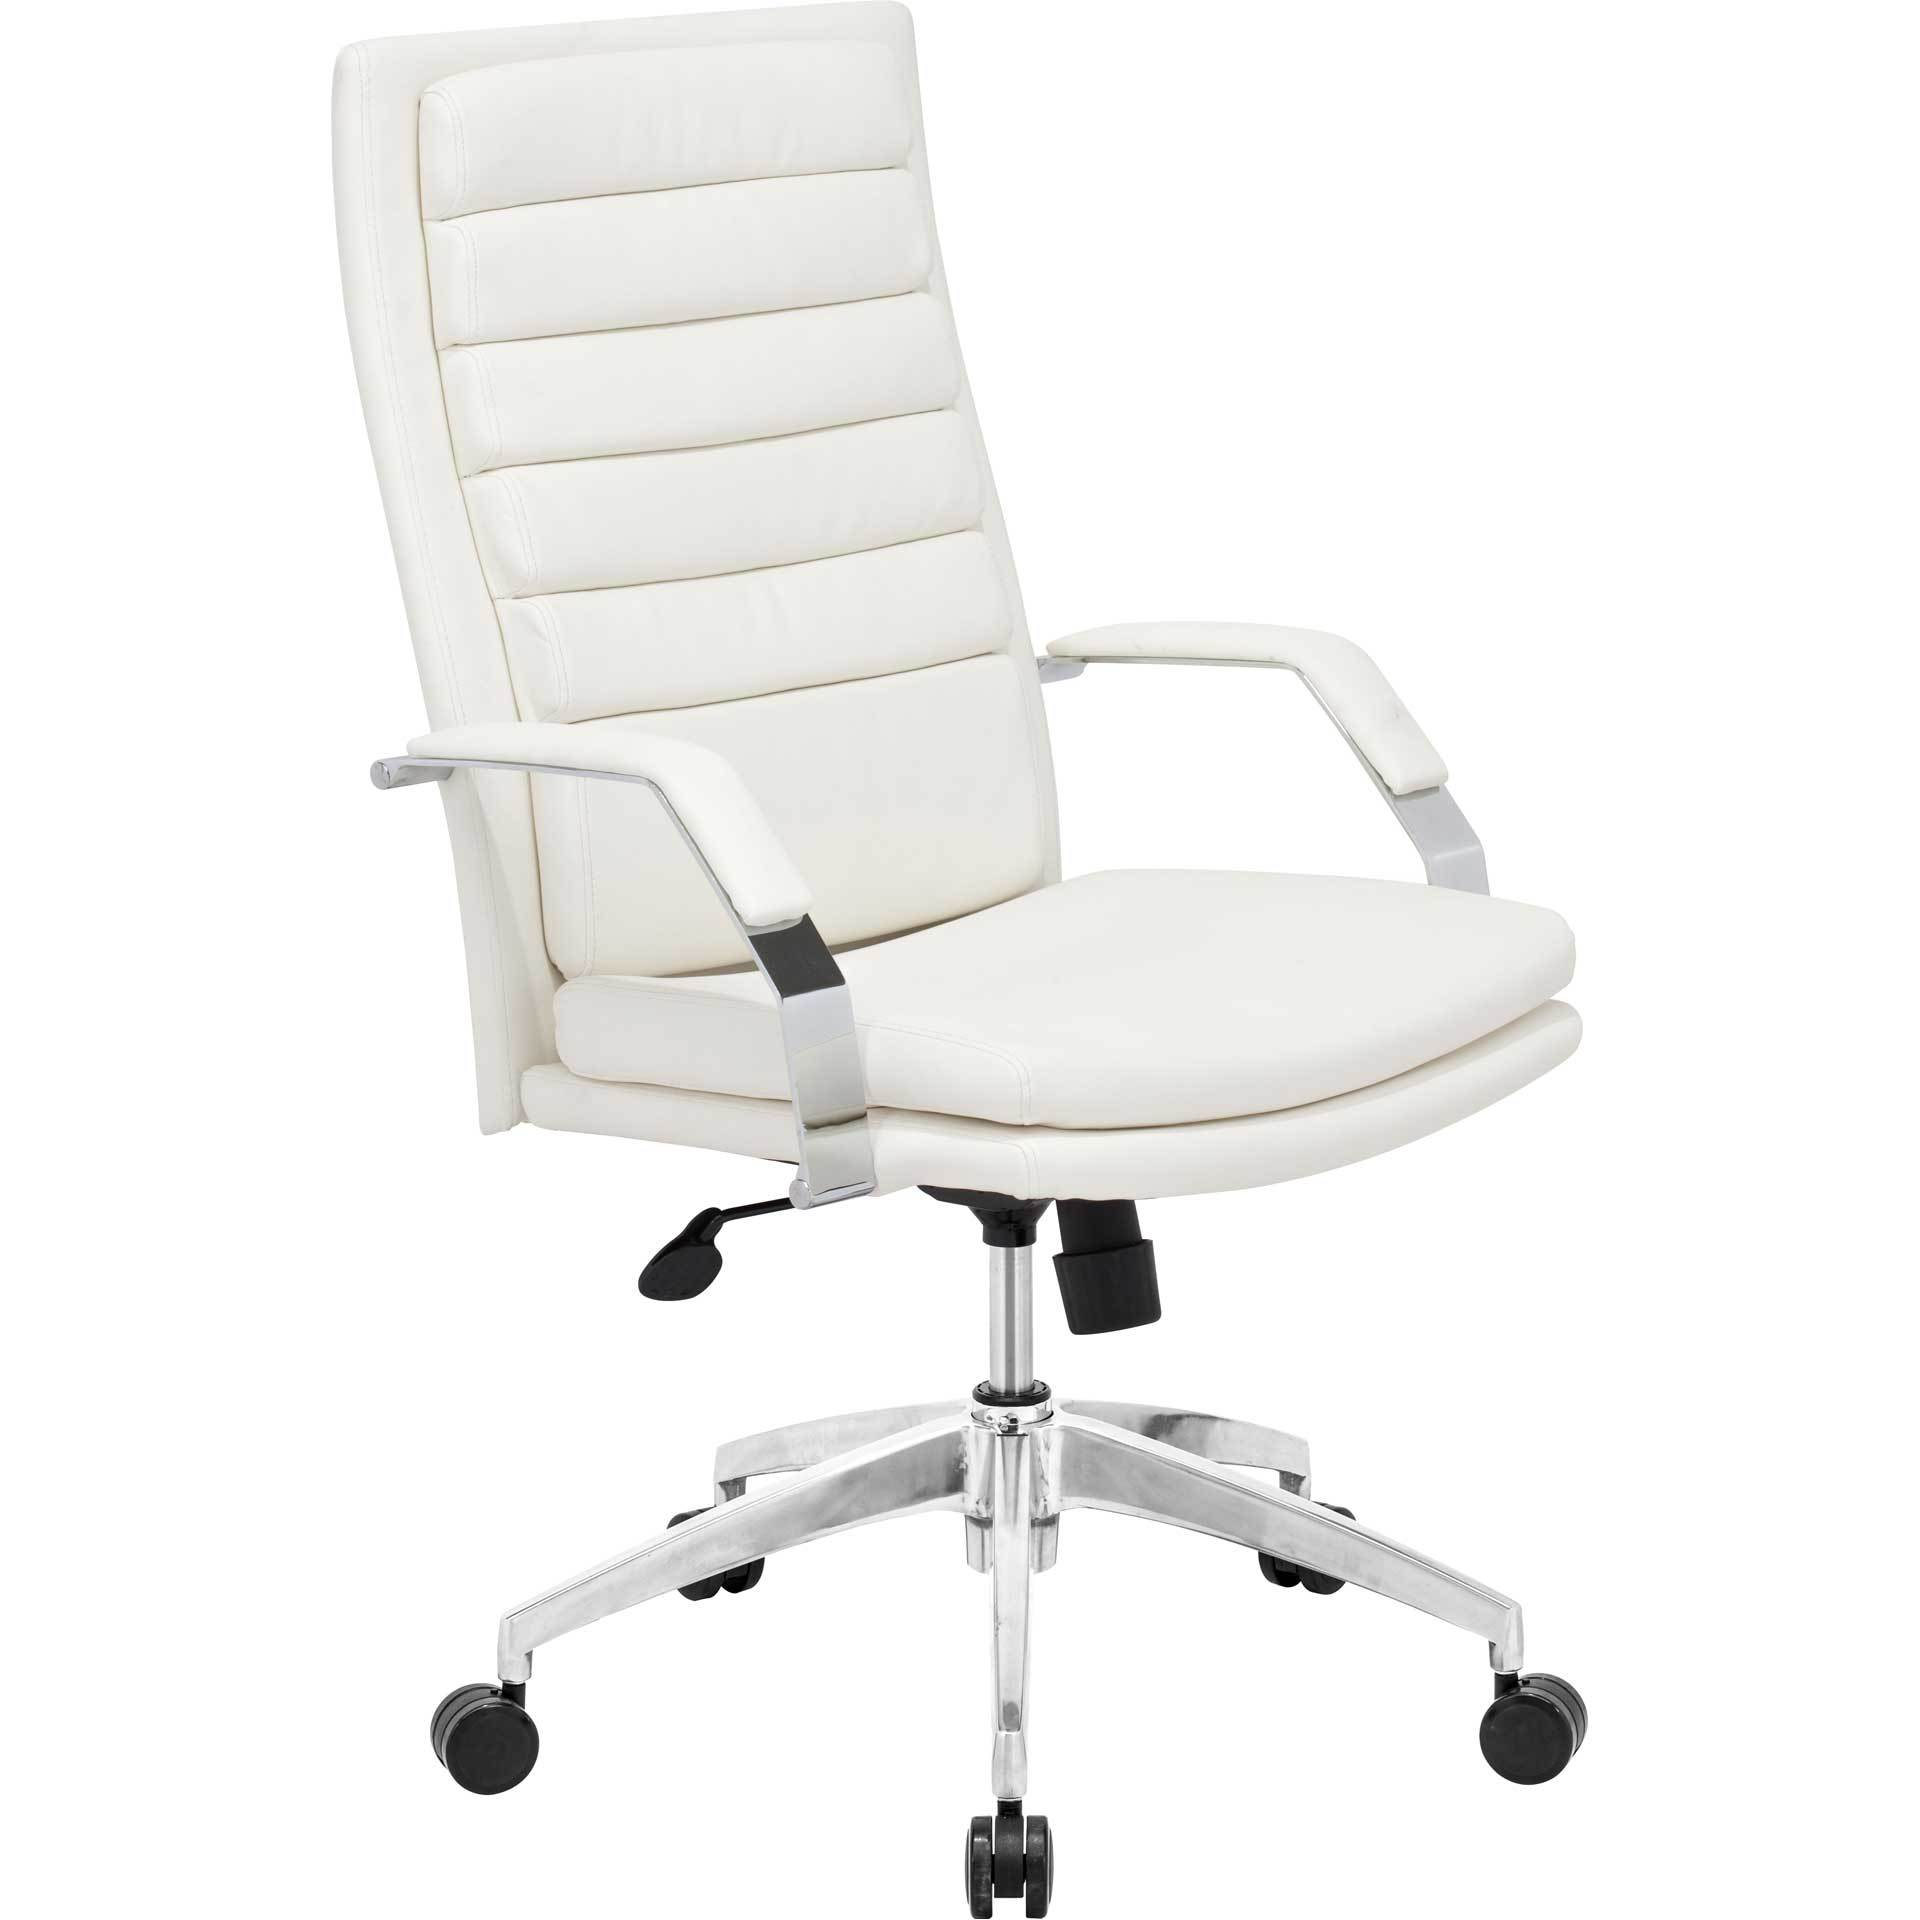 Dylan Office Chair White Adjustable Office Chair Brown Leather